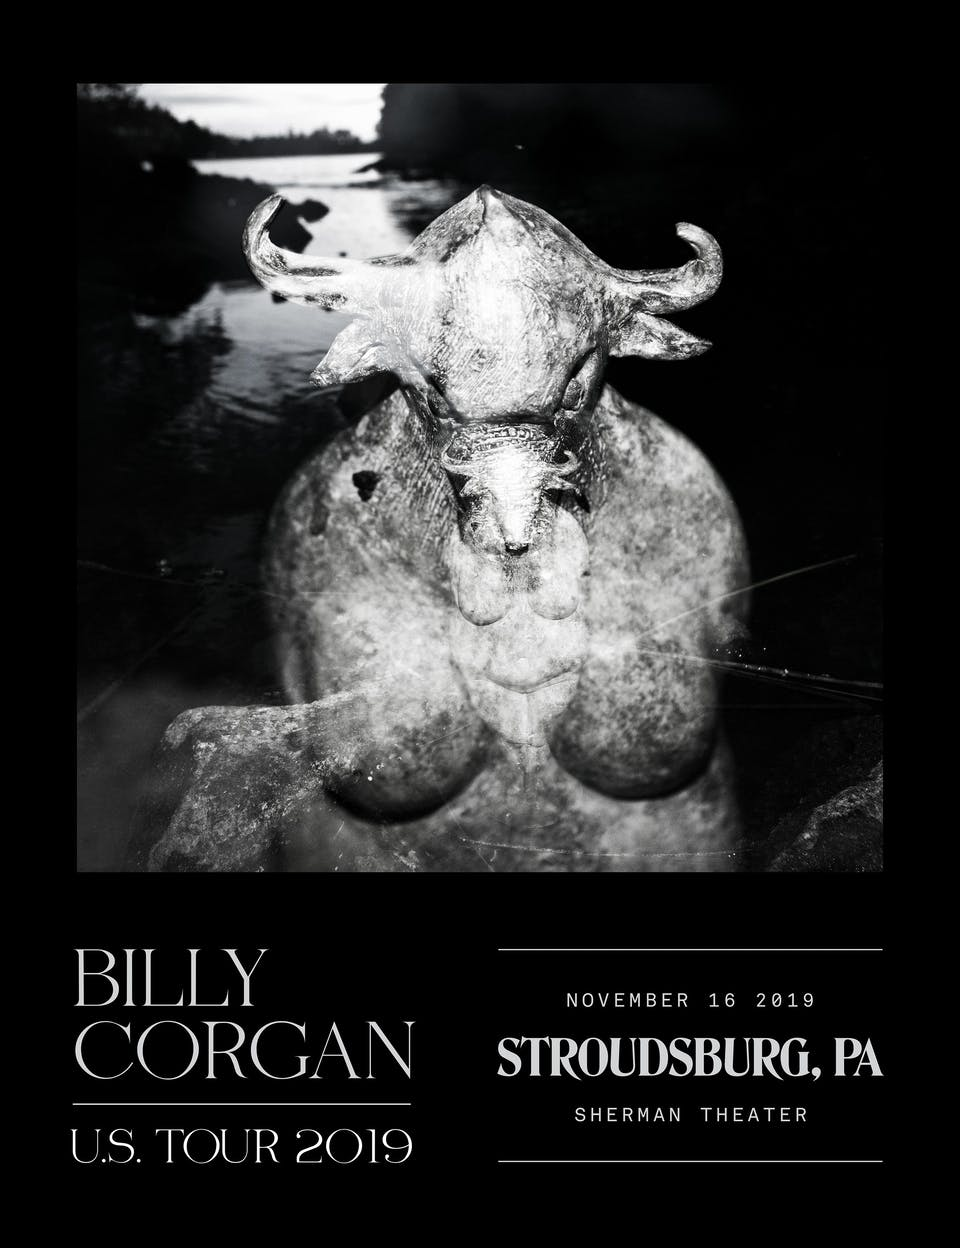 Billy Corgan - U.S. Tour 2019